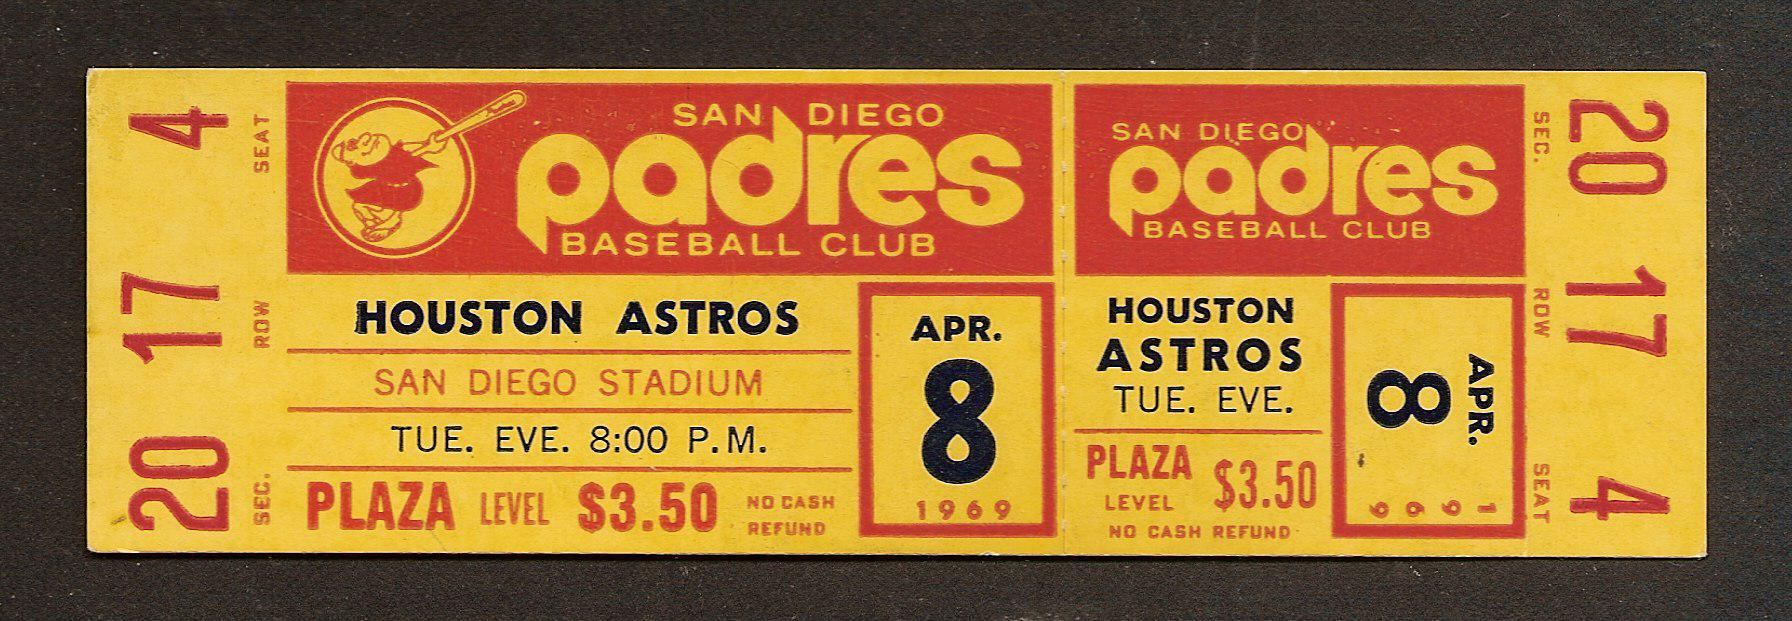 Astros at Padres 4-8-69 Opening Day stub